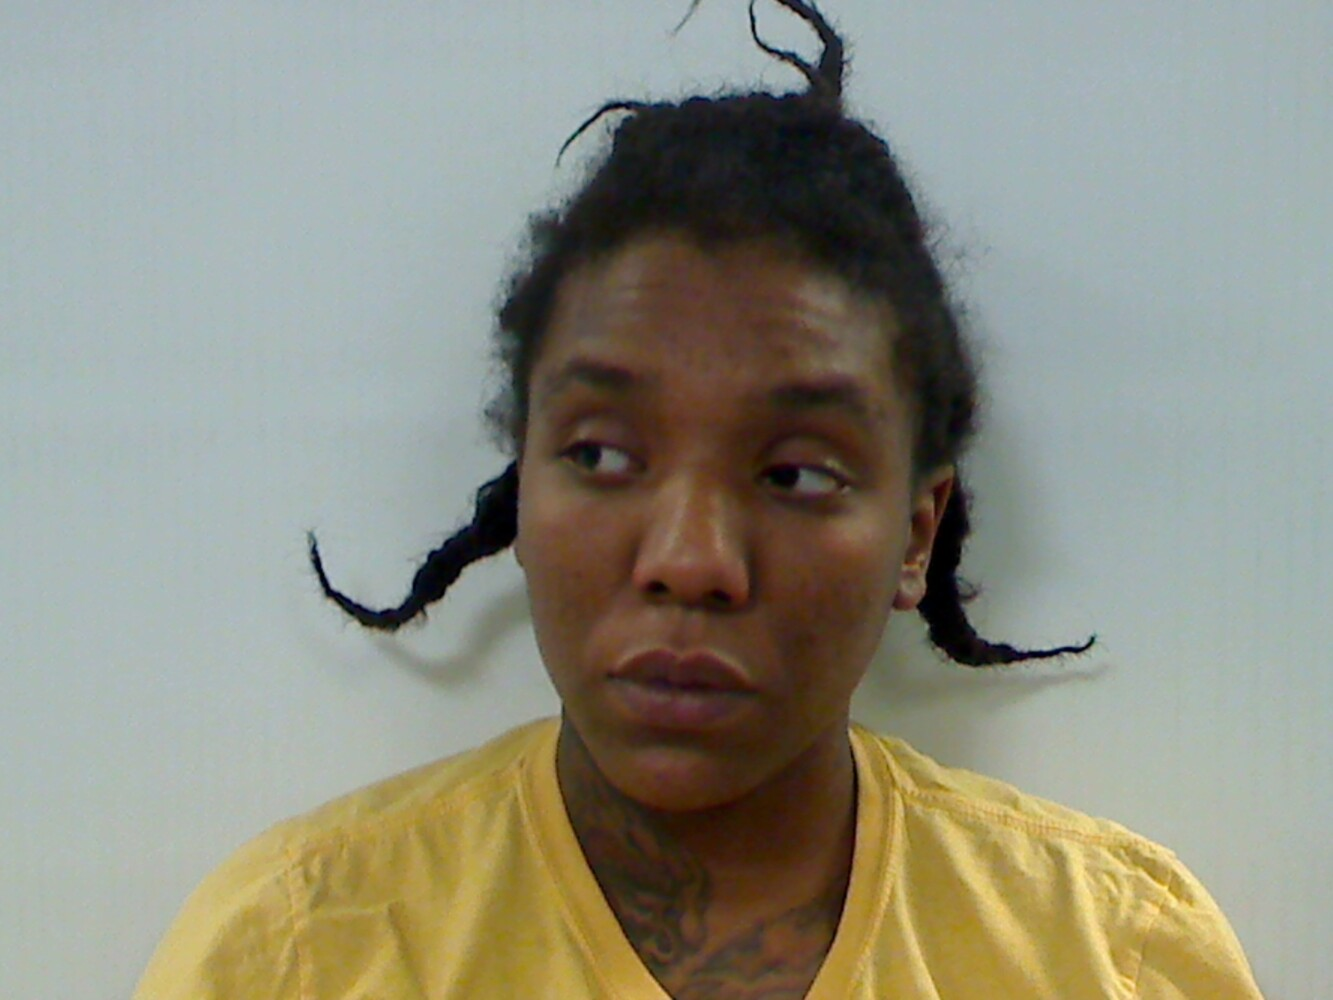 Woman indicted on attempted murder charge for allegedly slicing woman's throat in Augusta - CentralMaine.com